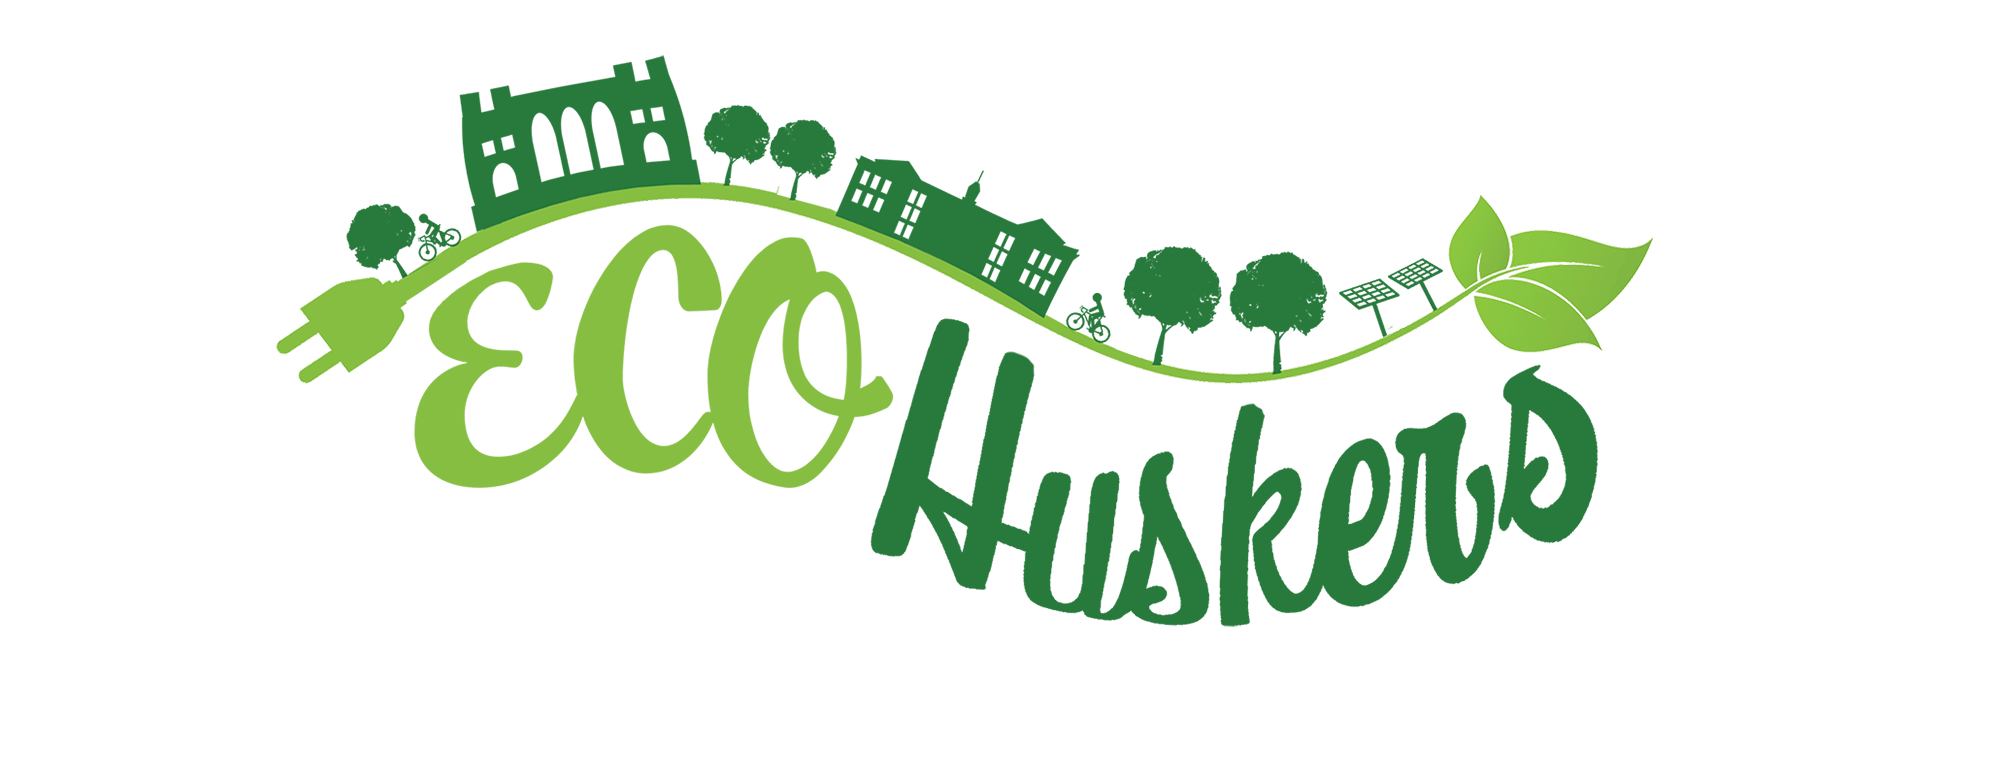 Eco Huskers logo in green